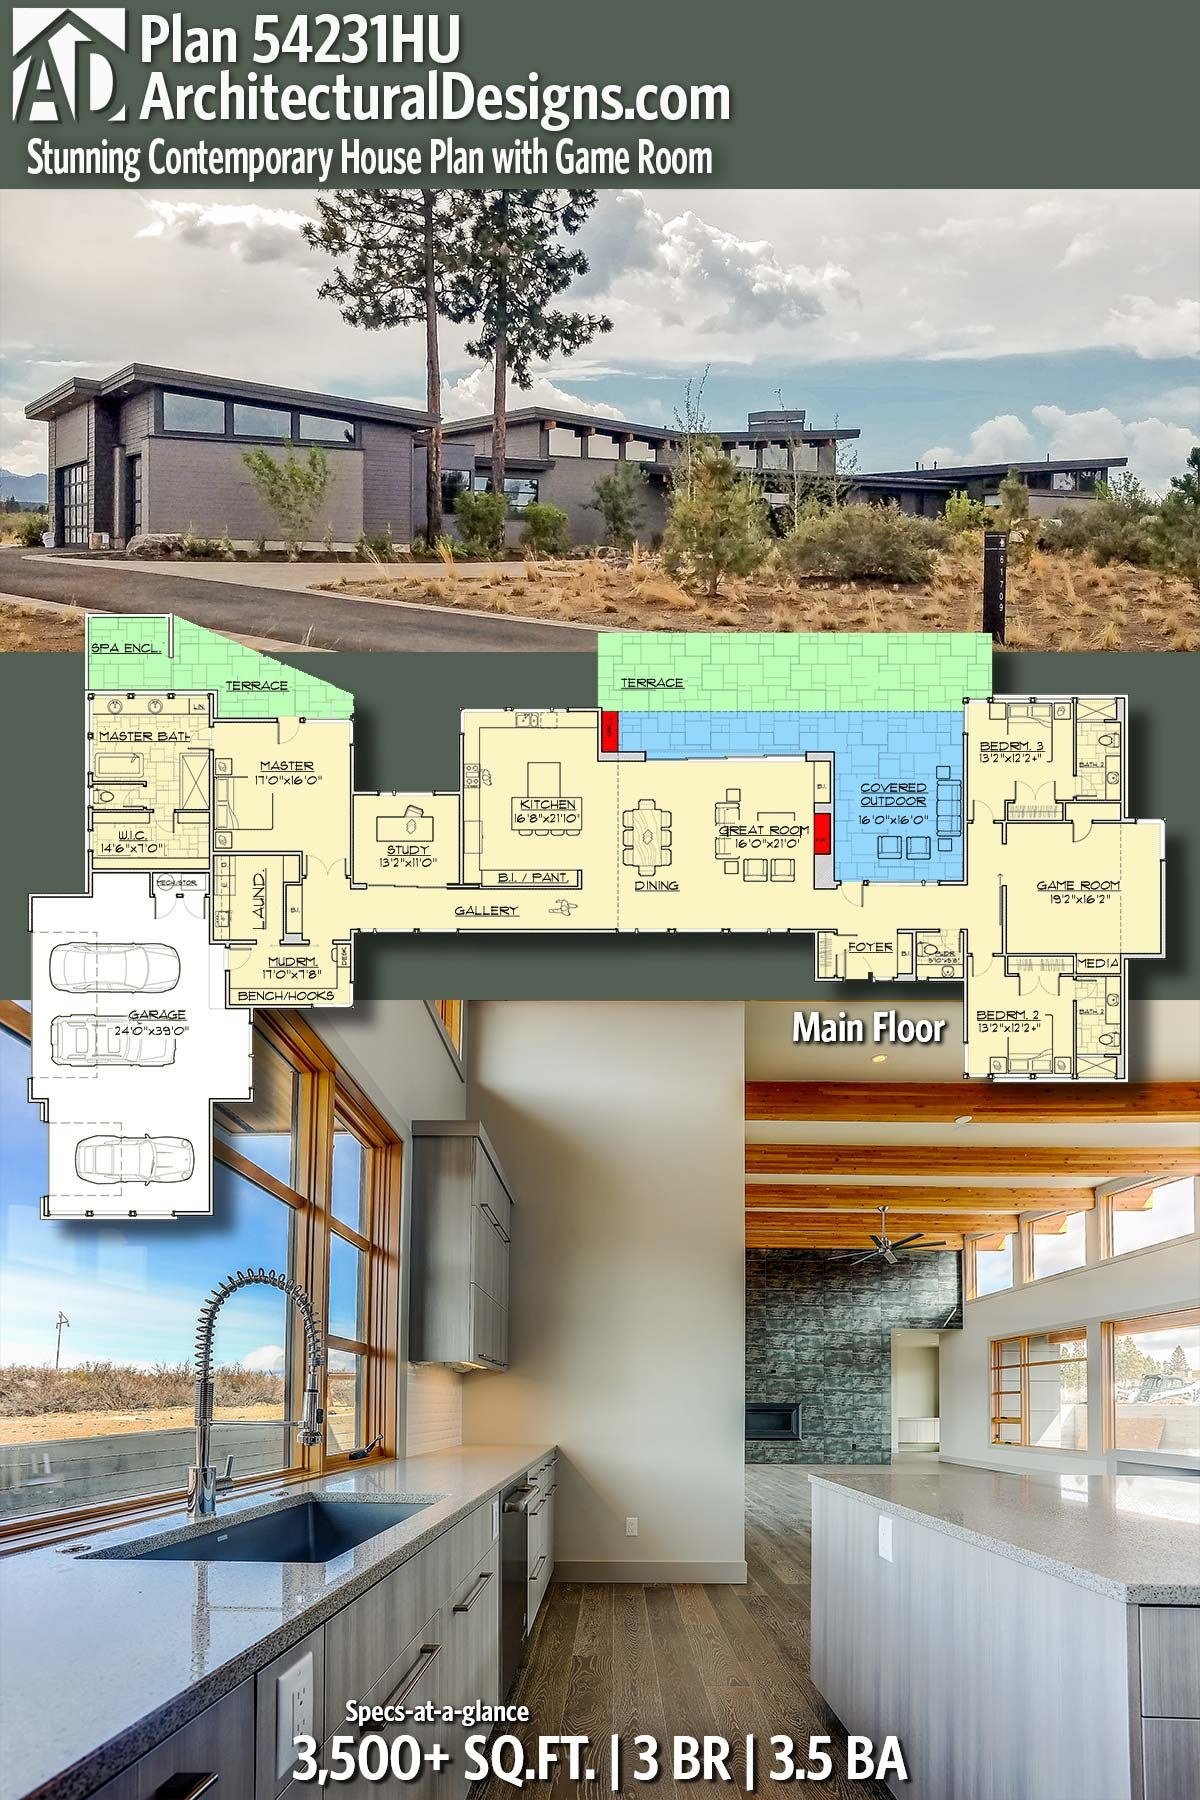 Architectural Designs Modern Plan 54231HU gives you